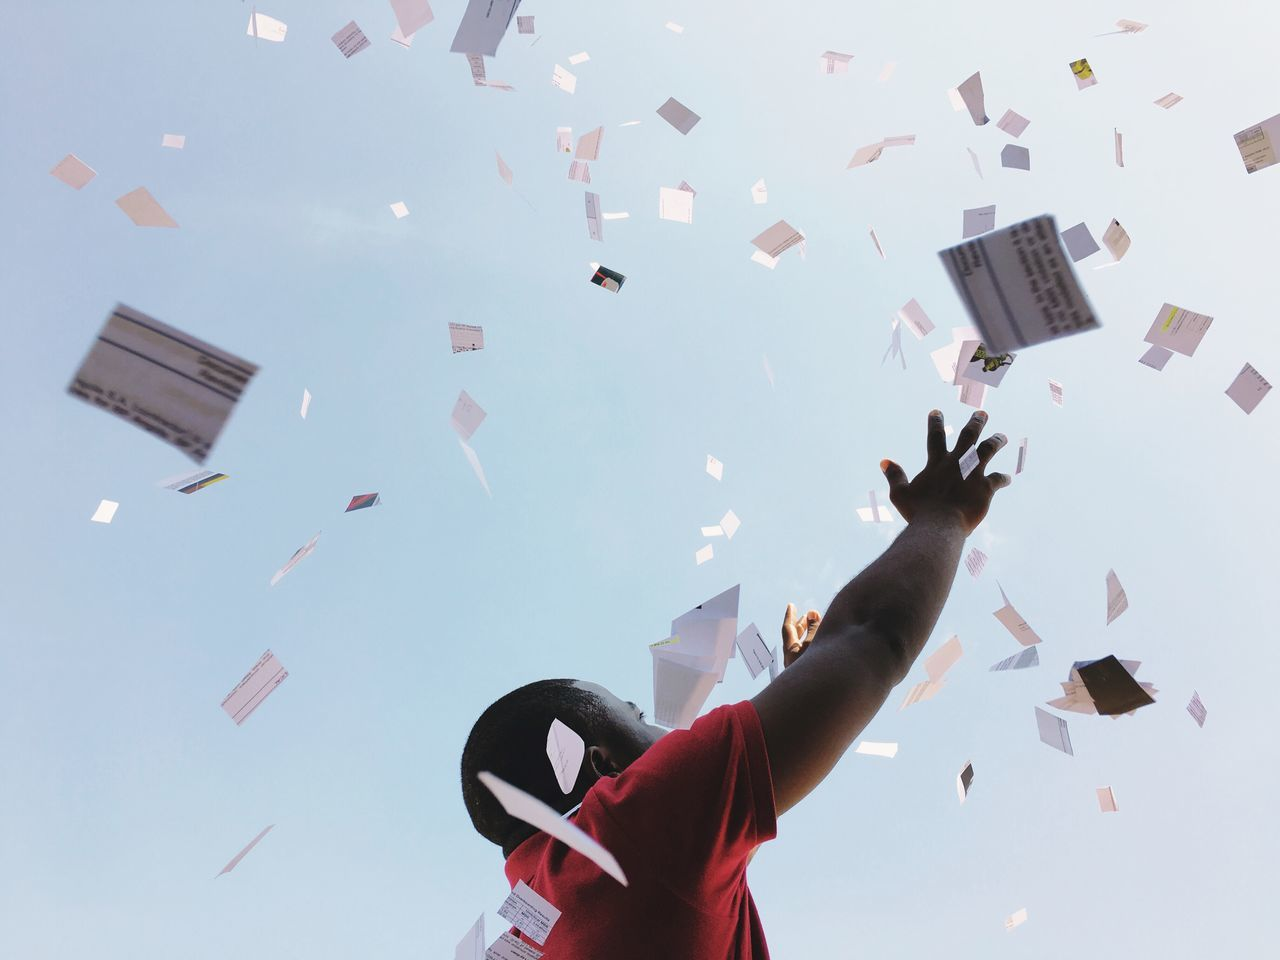 Low angle view of man with papers falling against sky